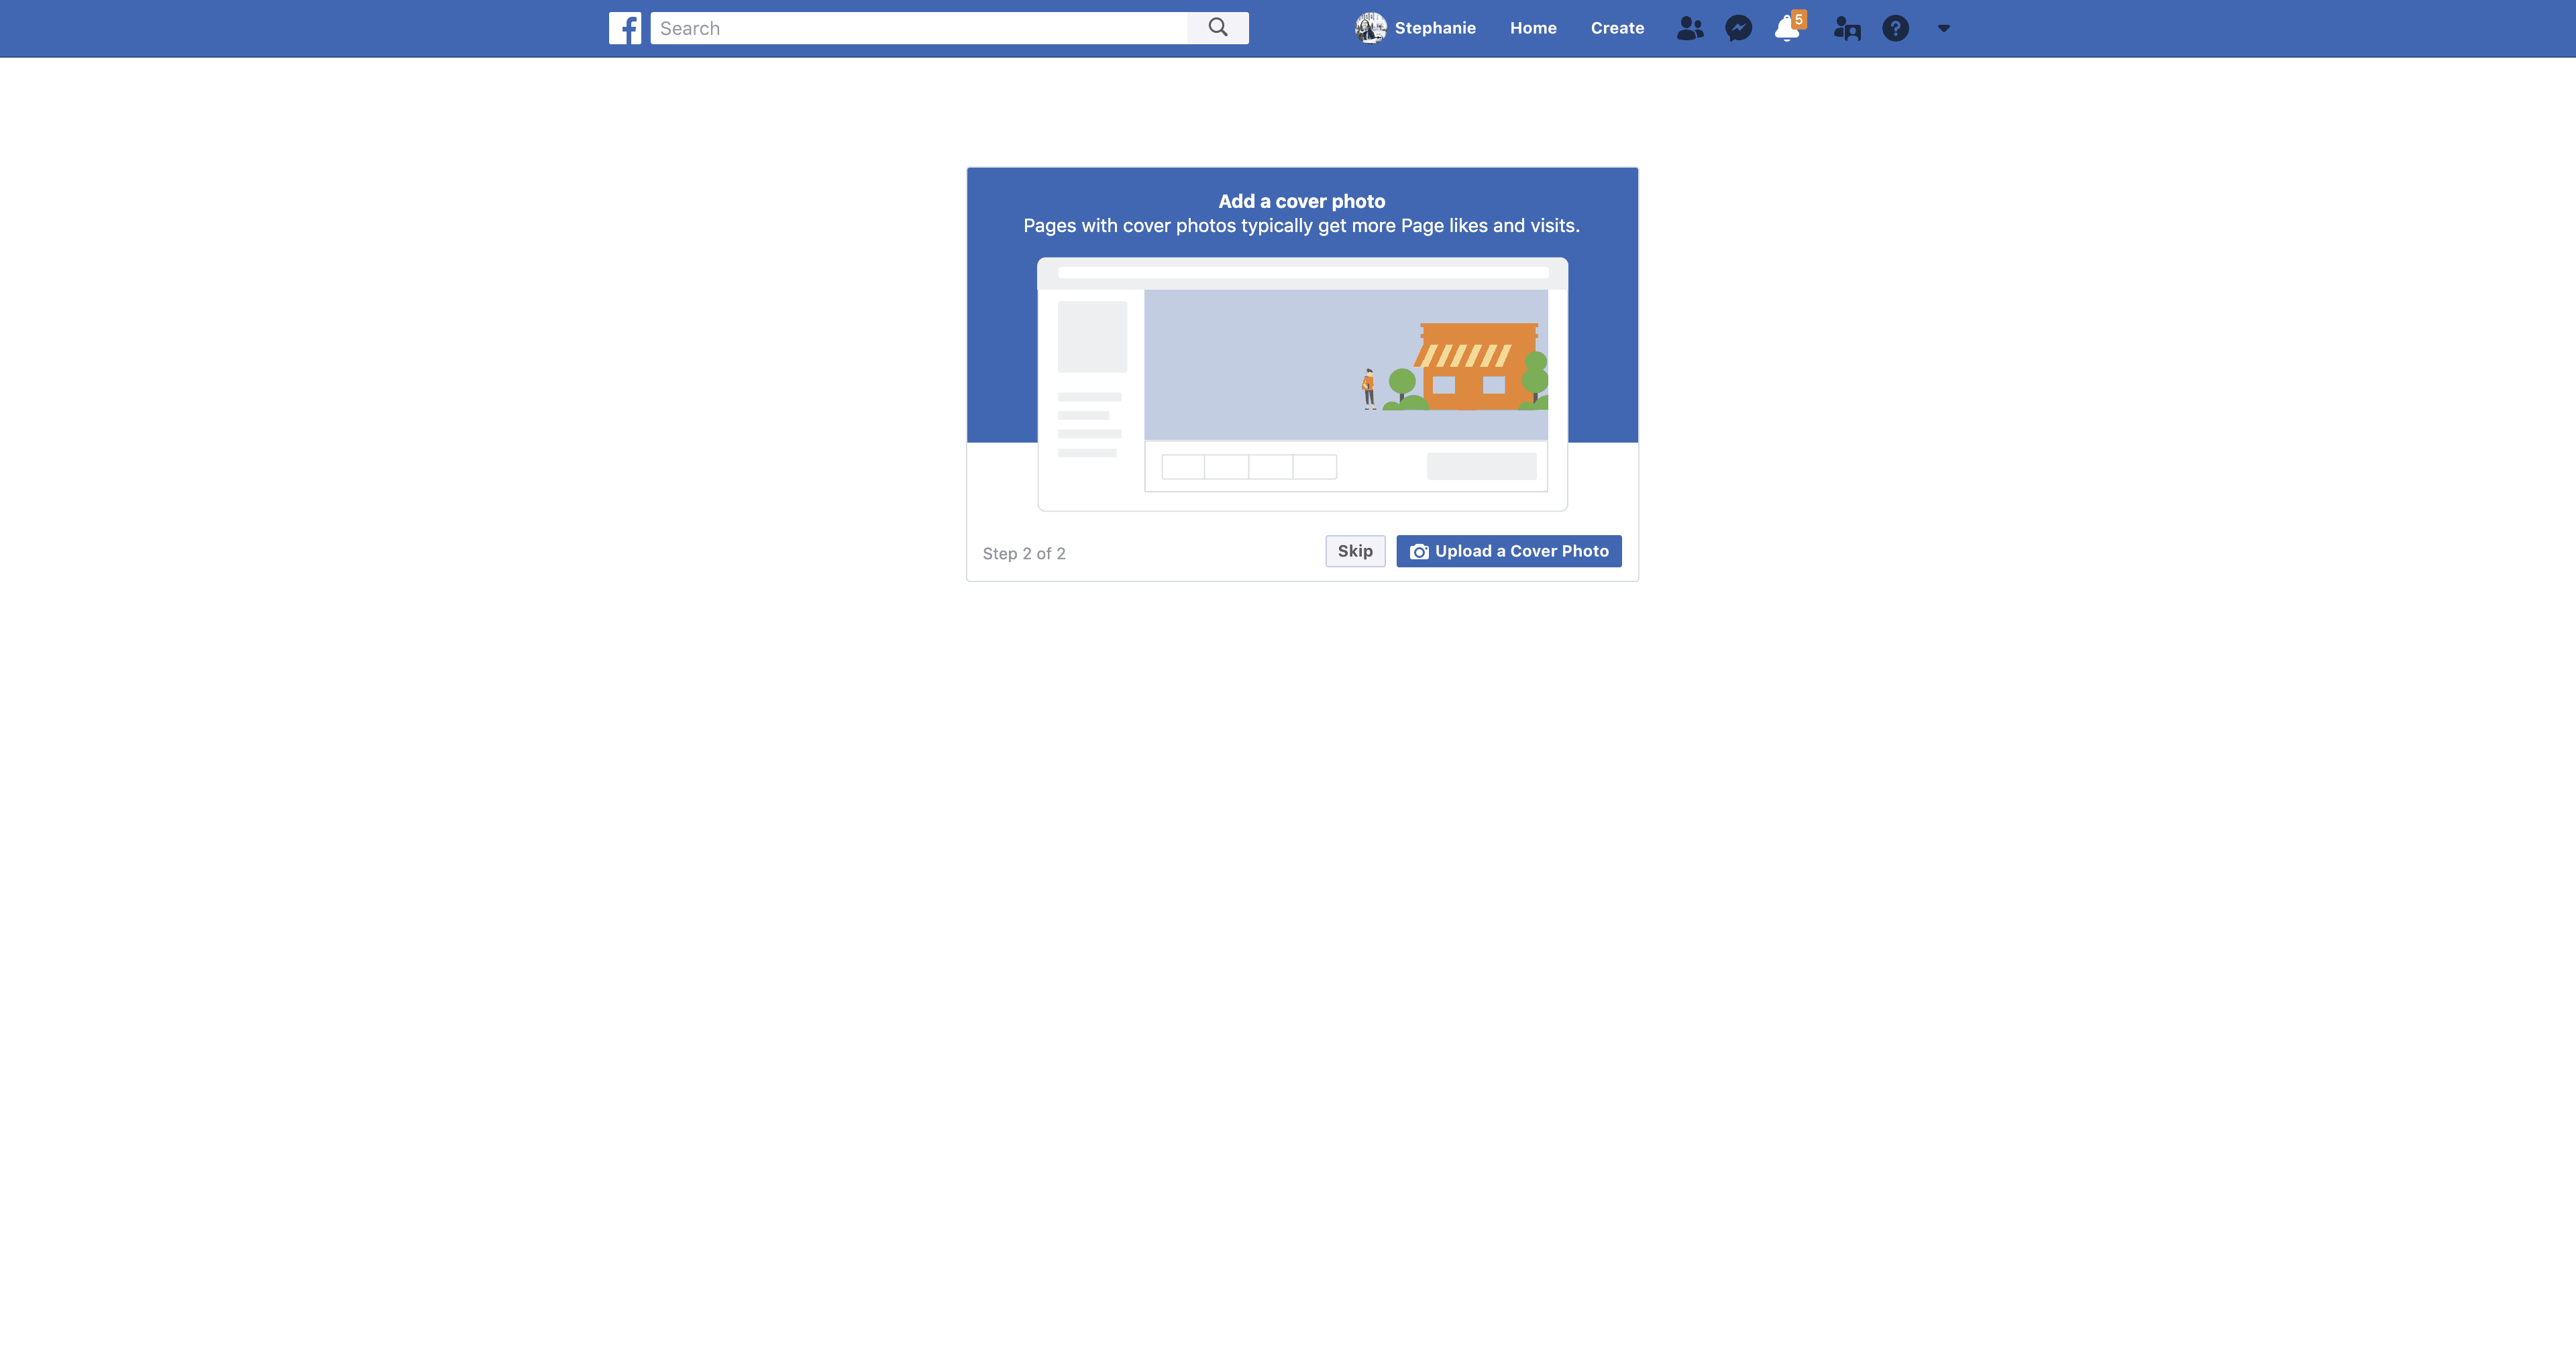 Add a Cover Photo for New Page by Facebook from UIGarage